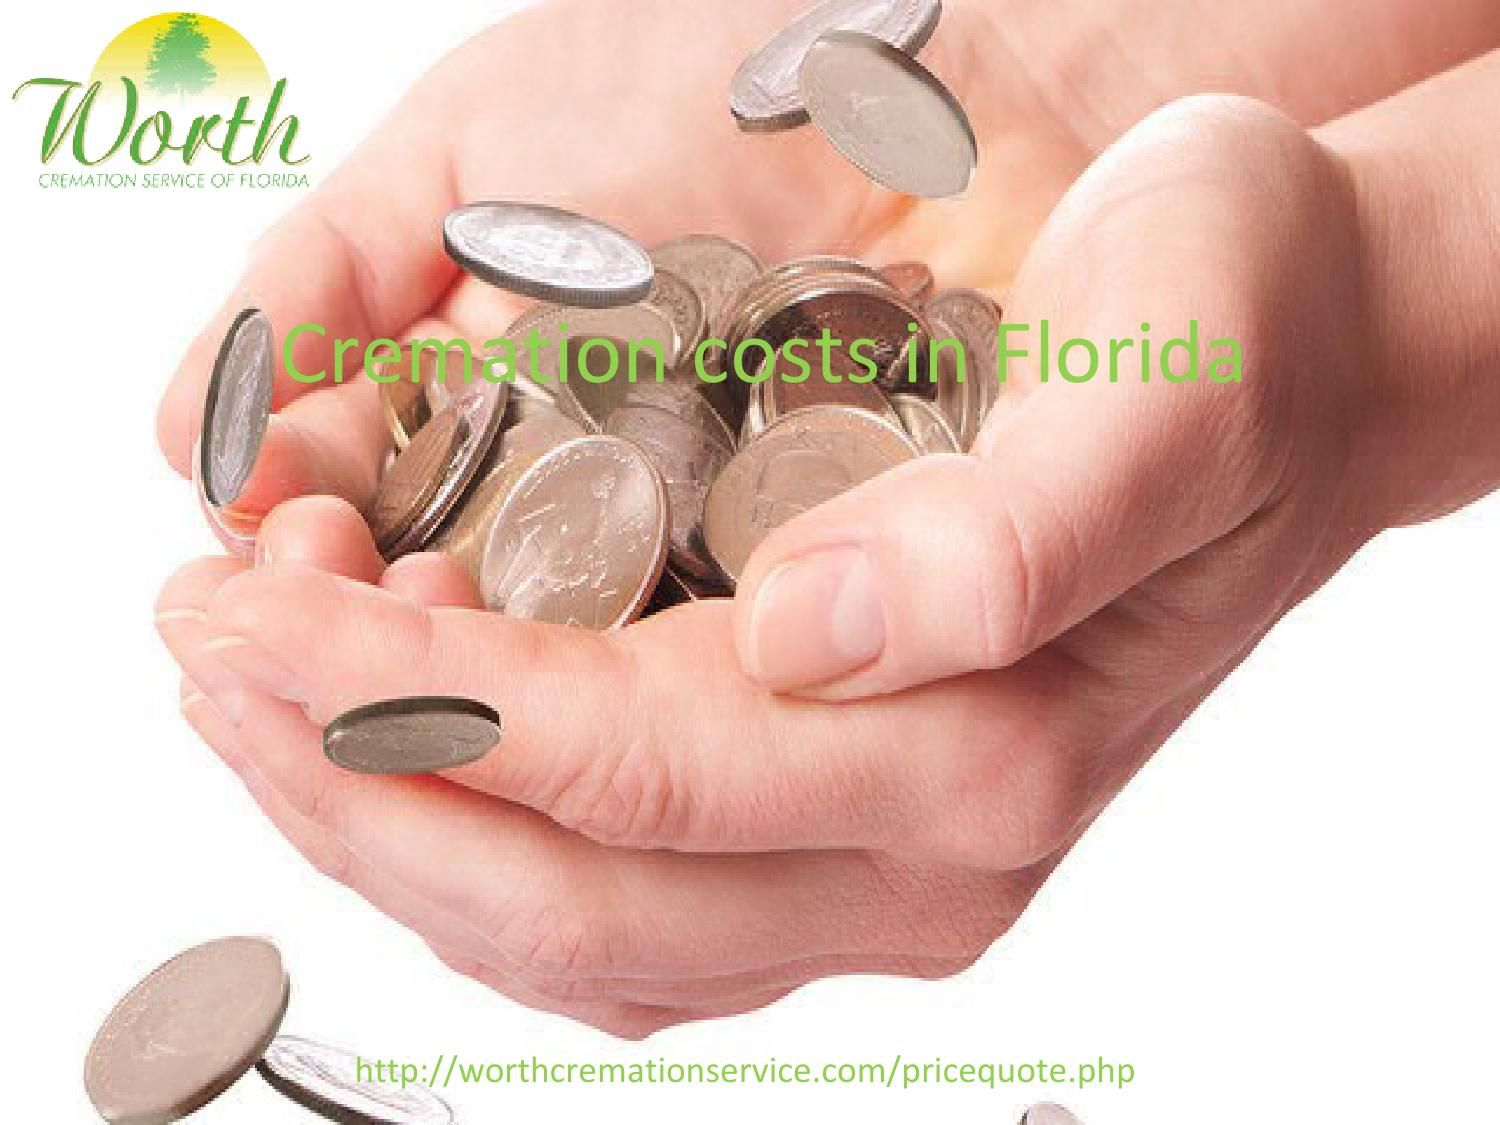 Cremation costs in florida  How you can get the best cremation costs in Florida? Let's know for an affordable cremation cost only on http://worthcremationservice.com/pricequote.php